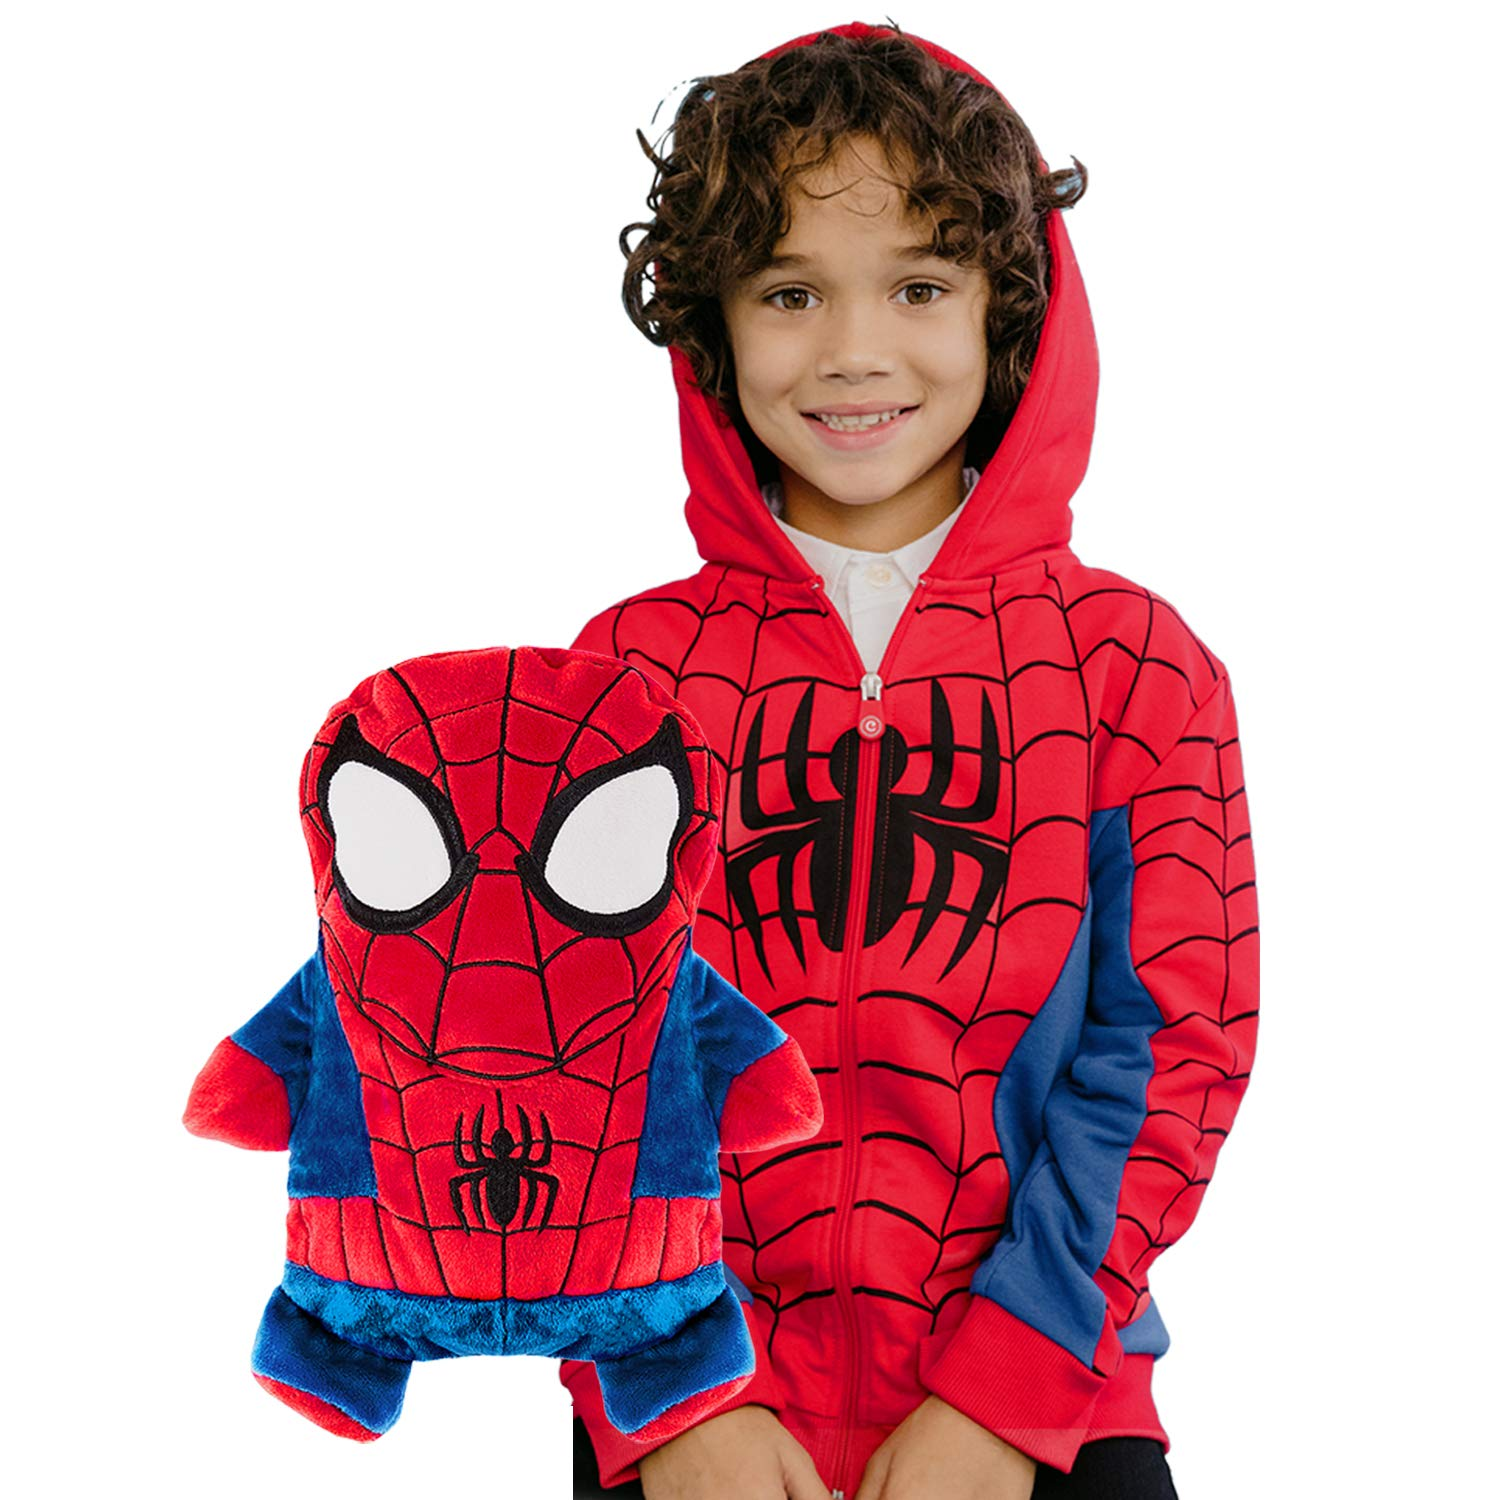 Cubcoats Spider-Man - 2-in-1 Transforming Hoodie and Soft Plushie - Red and Black by Cubcoats